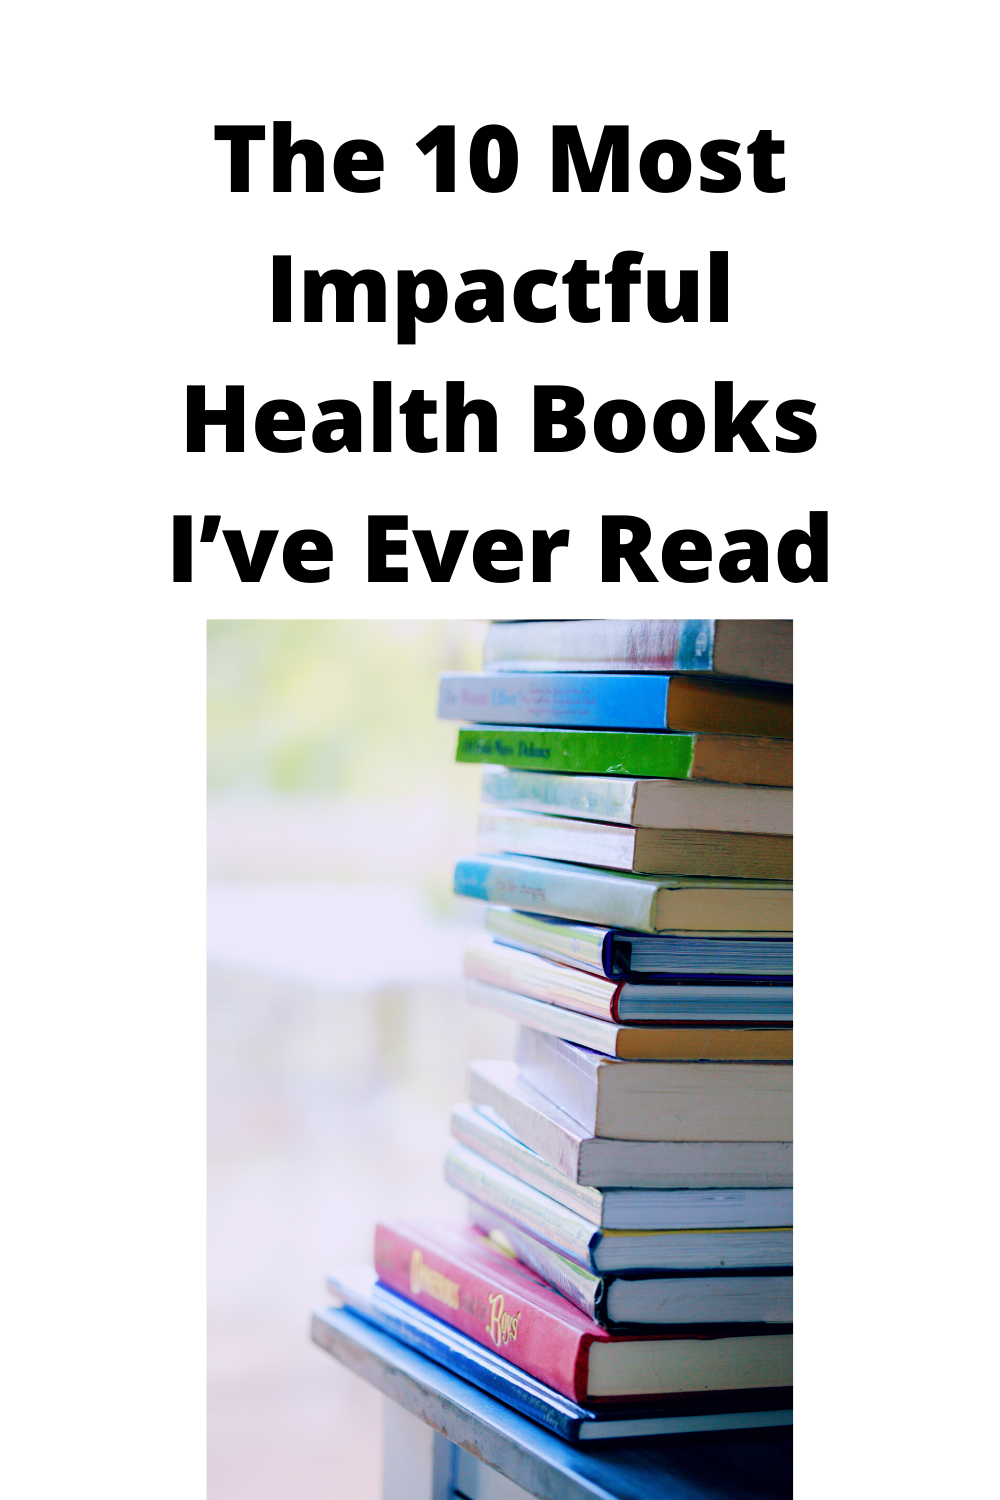 The 10 Most Impactful Health Books I've Ever Read